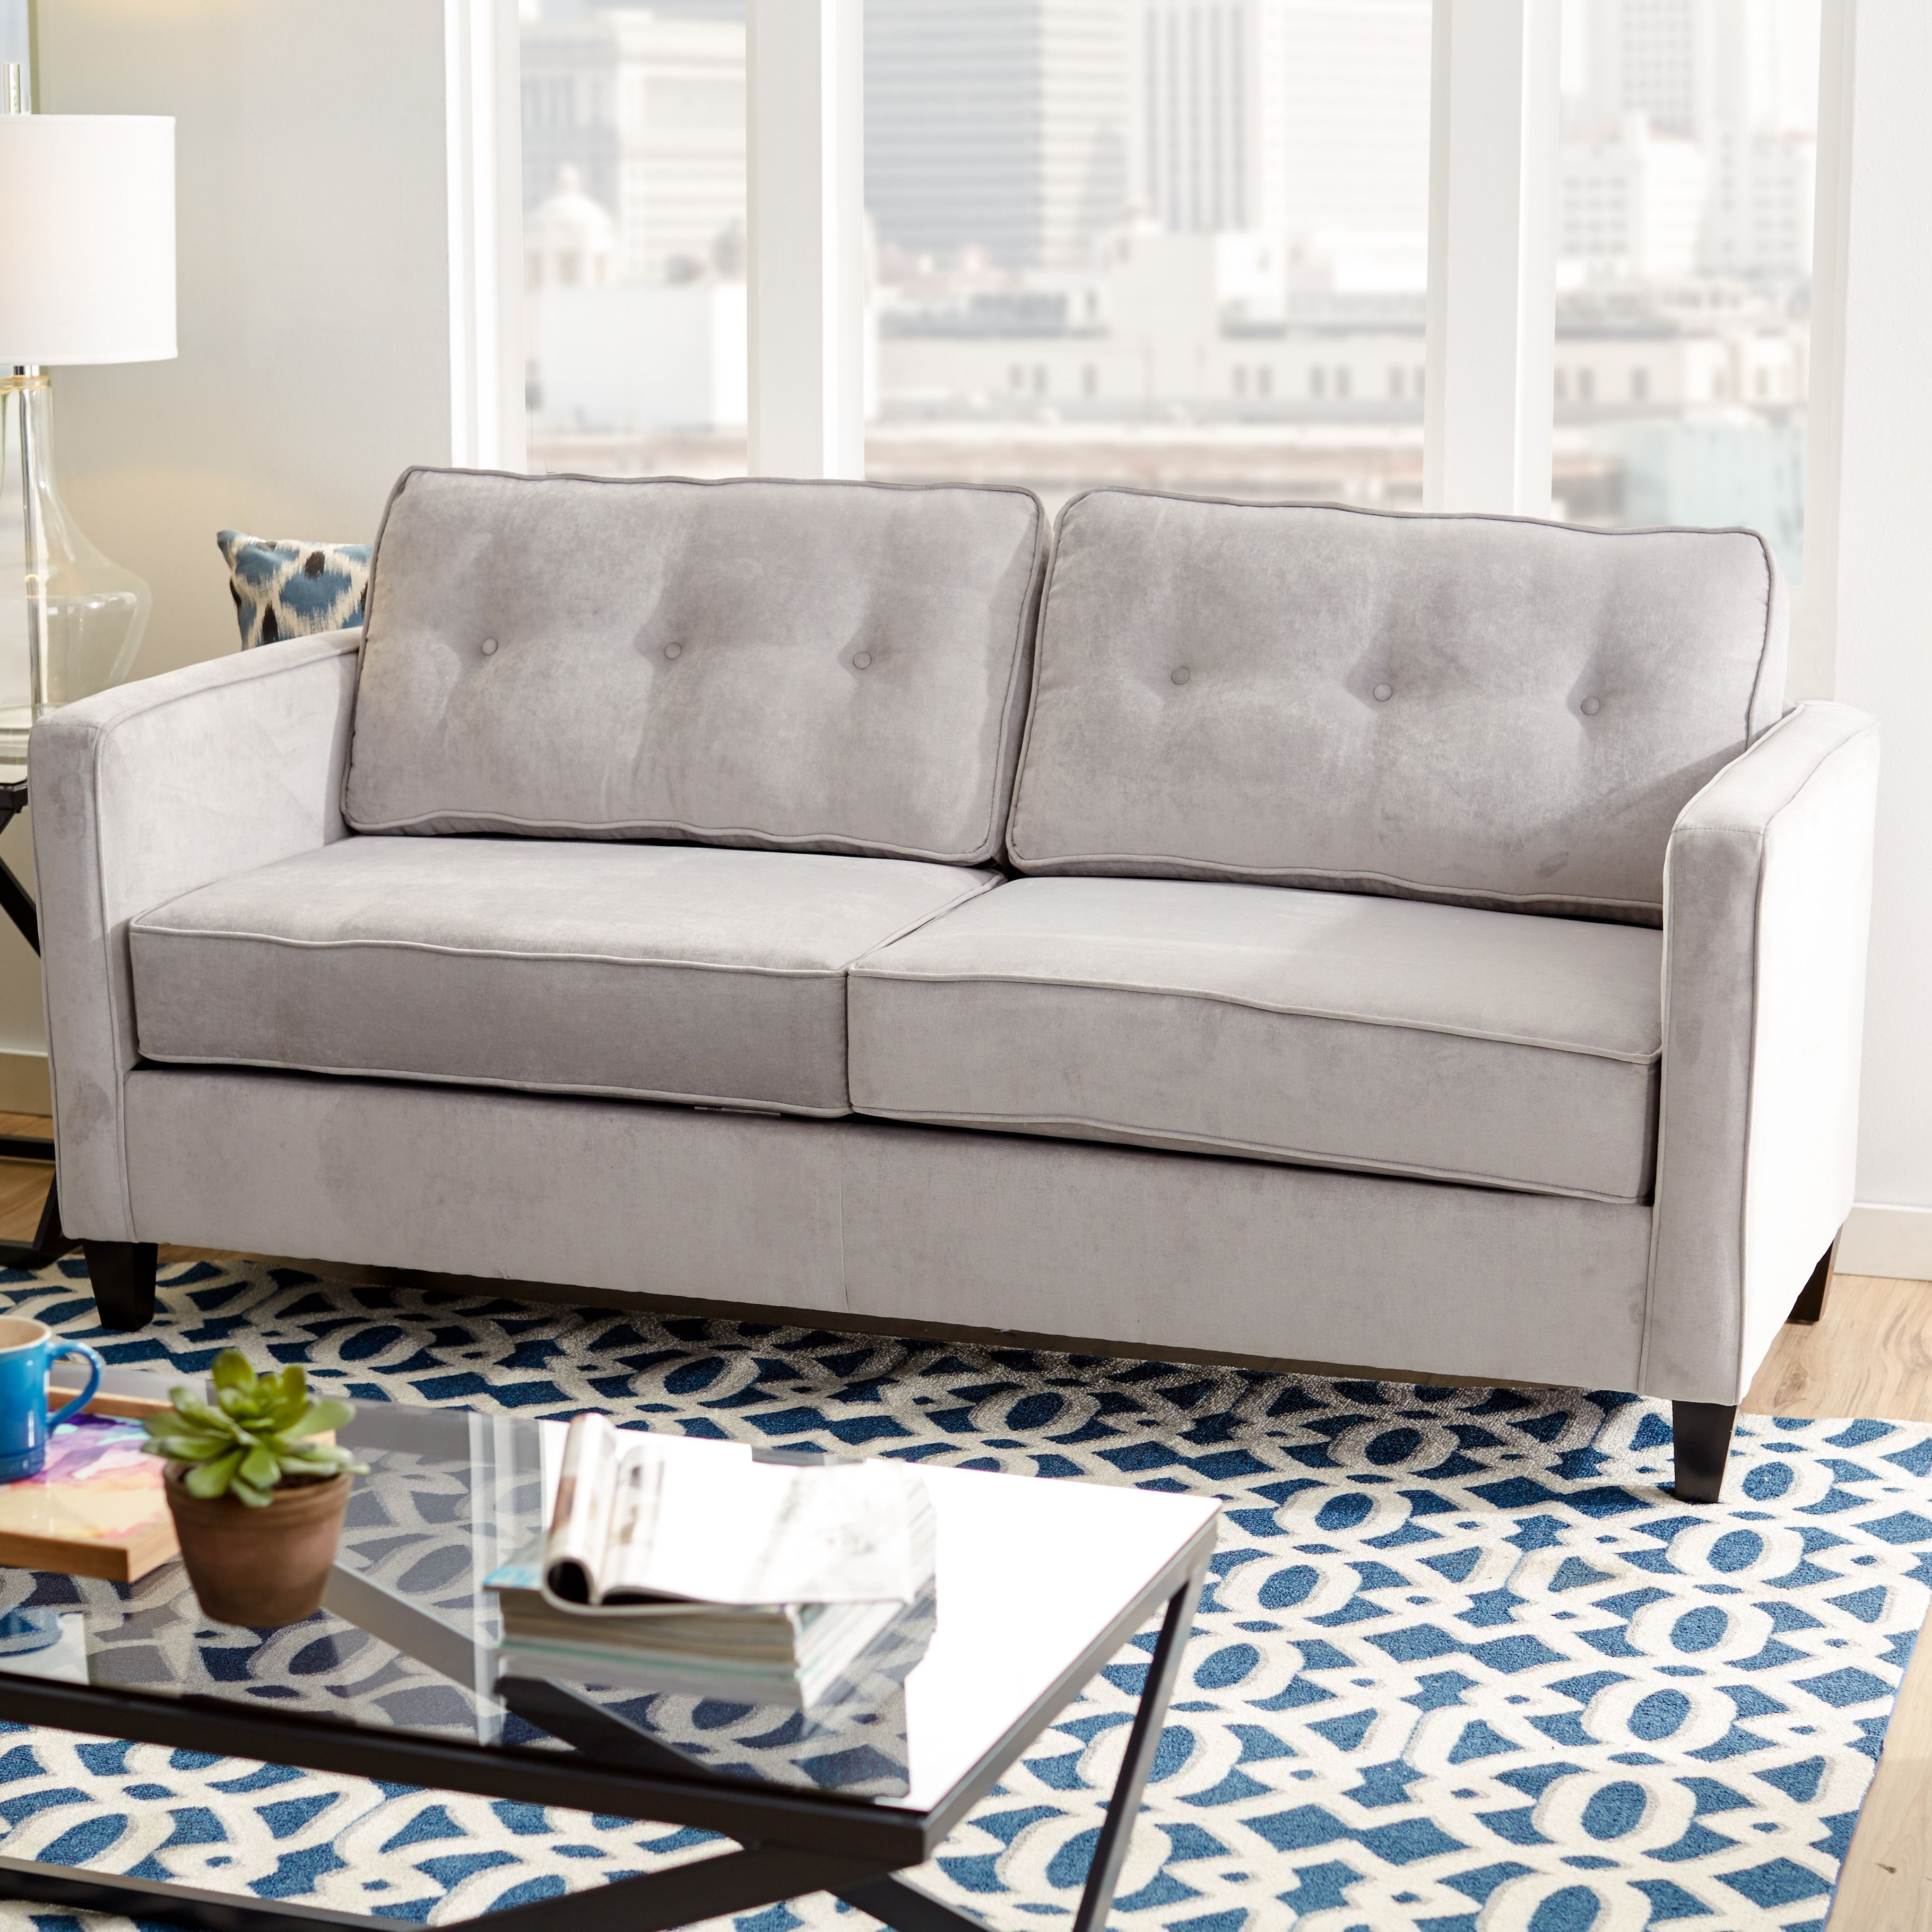 You'll Love The Serta Upholstery Cypress Sofa At Wayfair